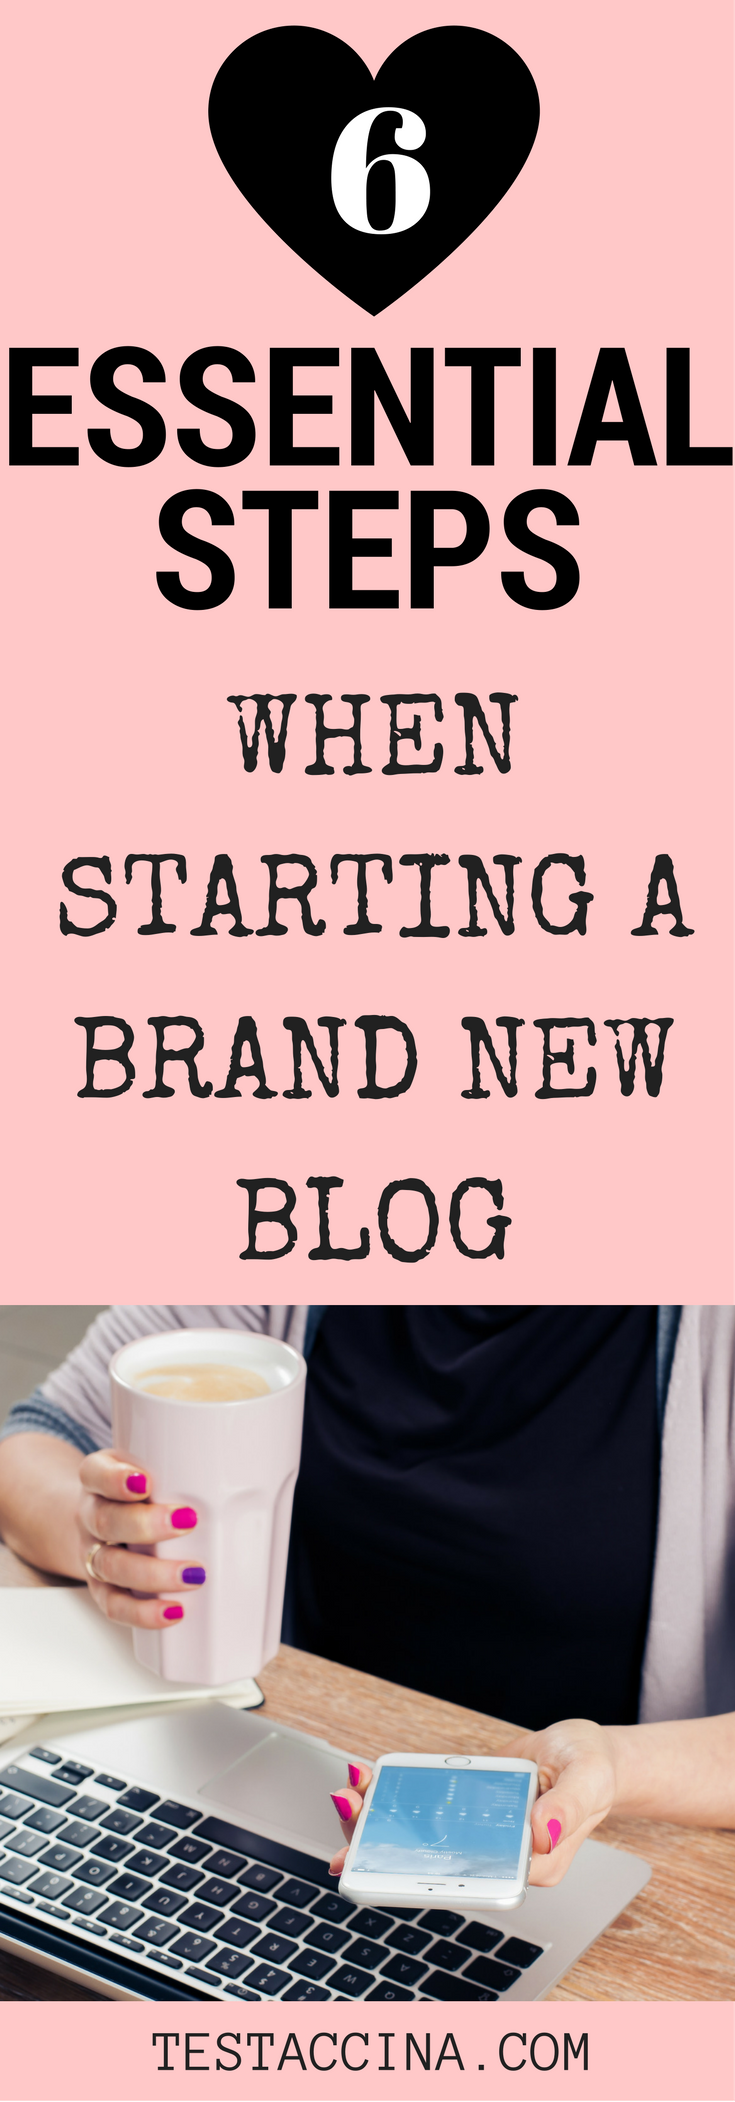 Make starting a new blog fun and easy with this essential guide. Starting out right gives you a better chance of success in the long run!